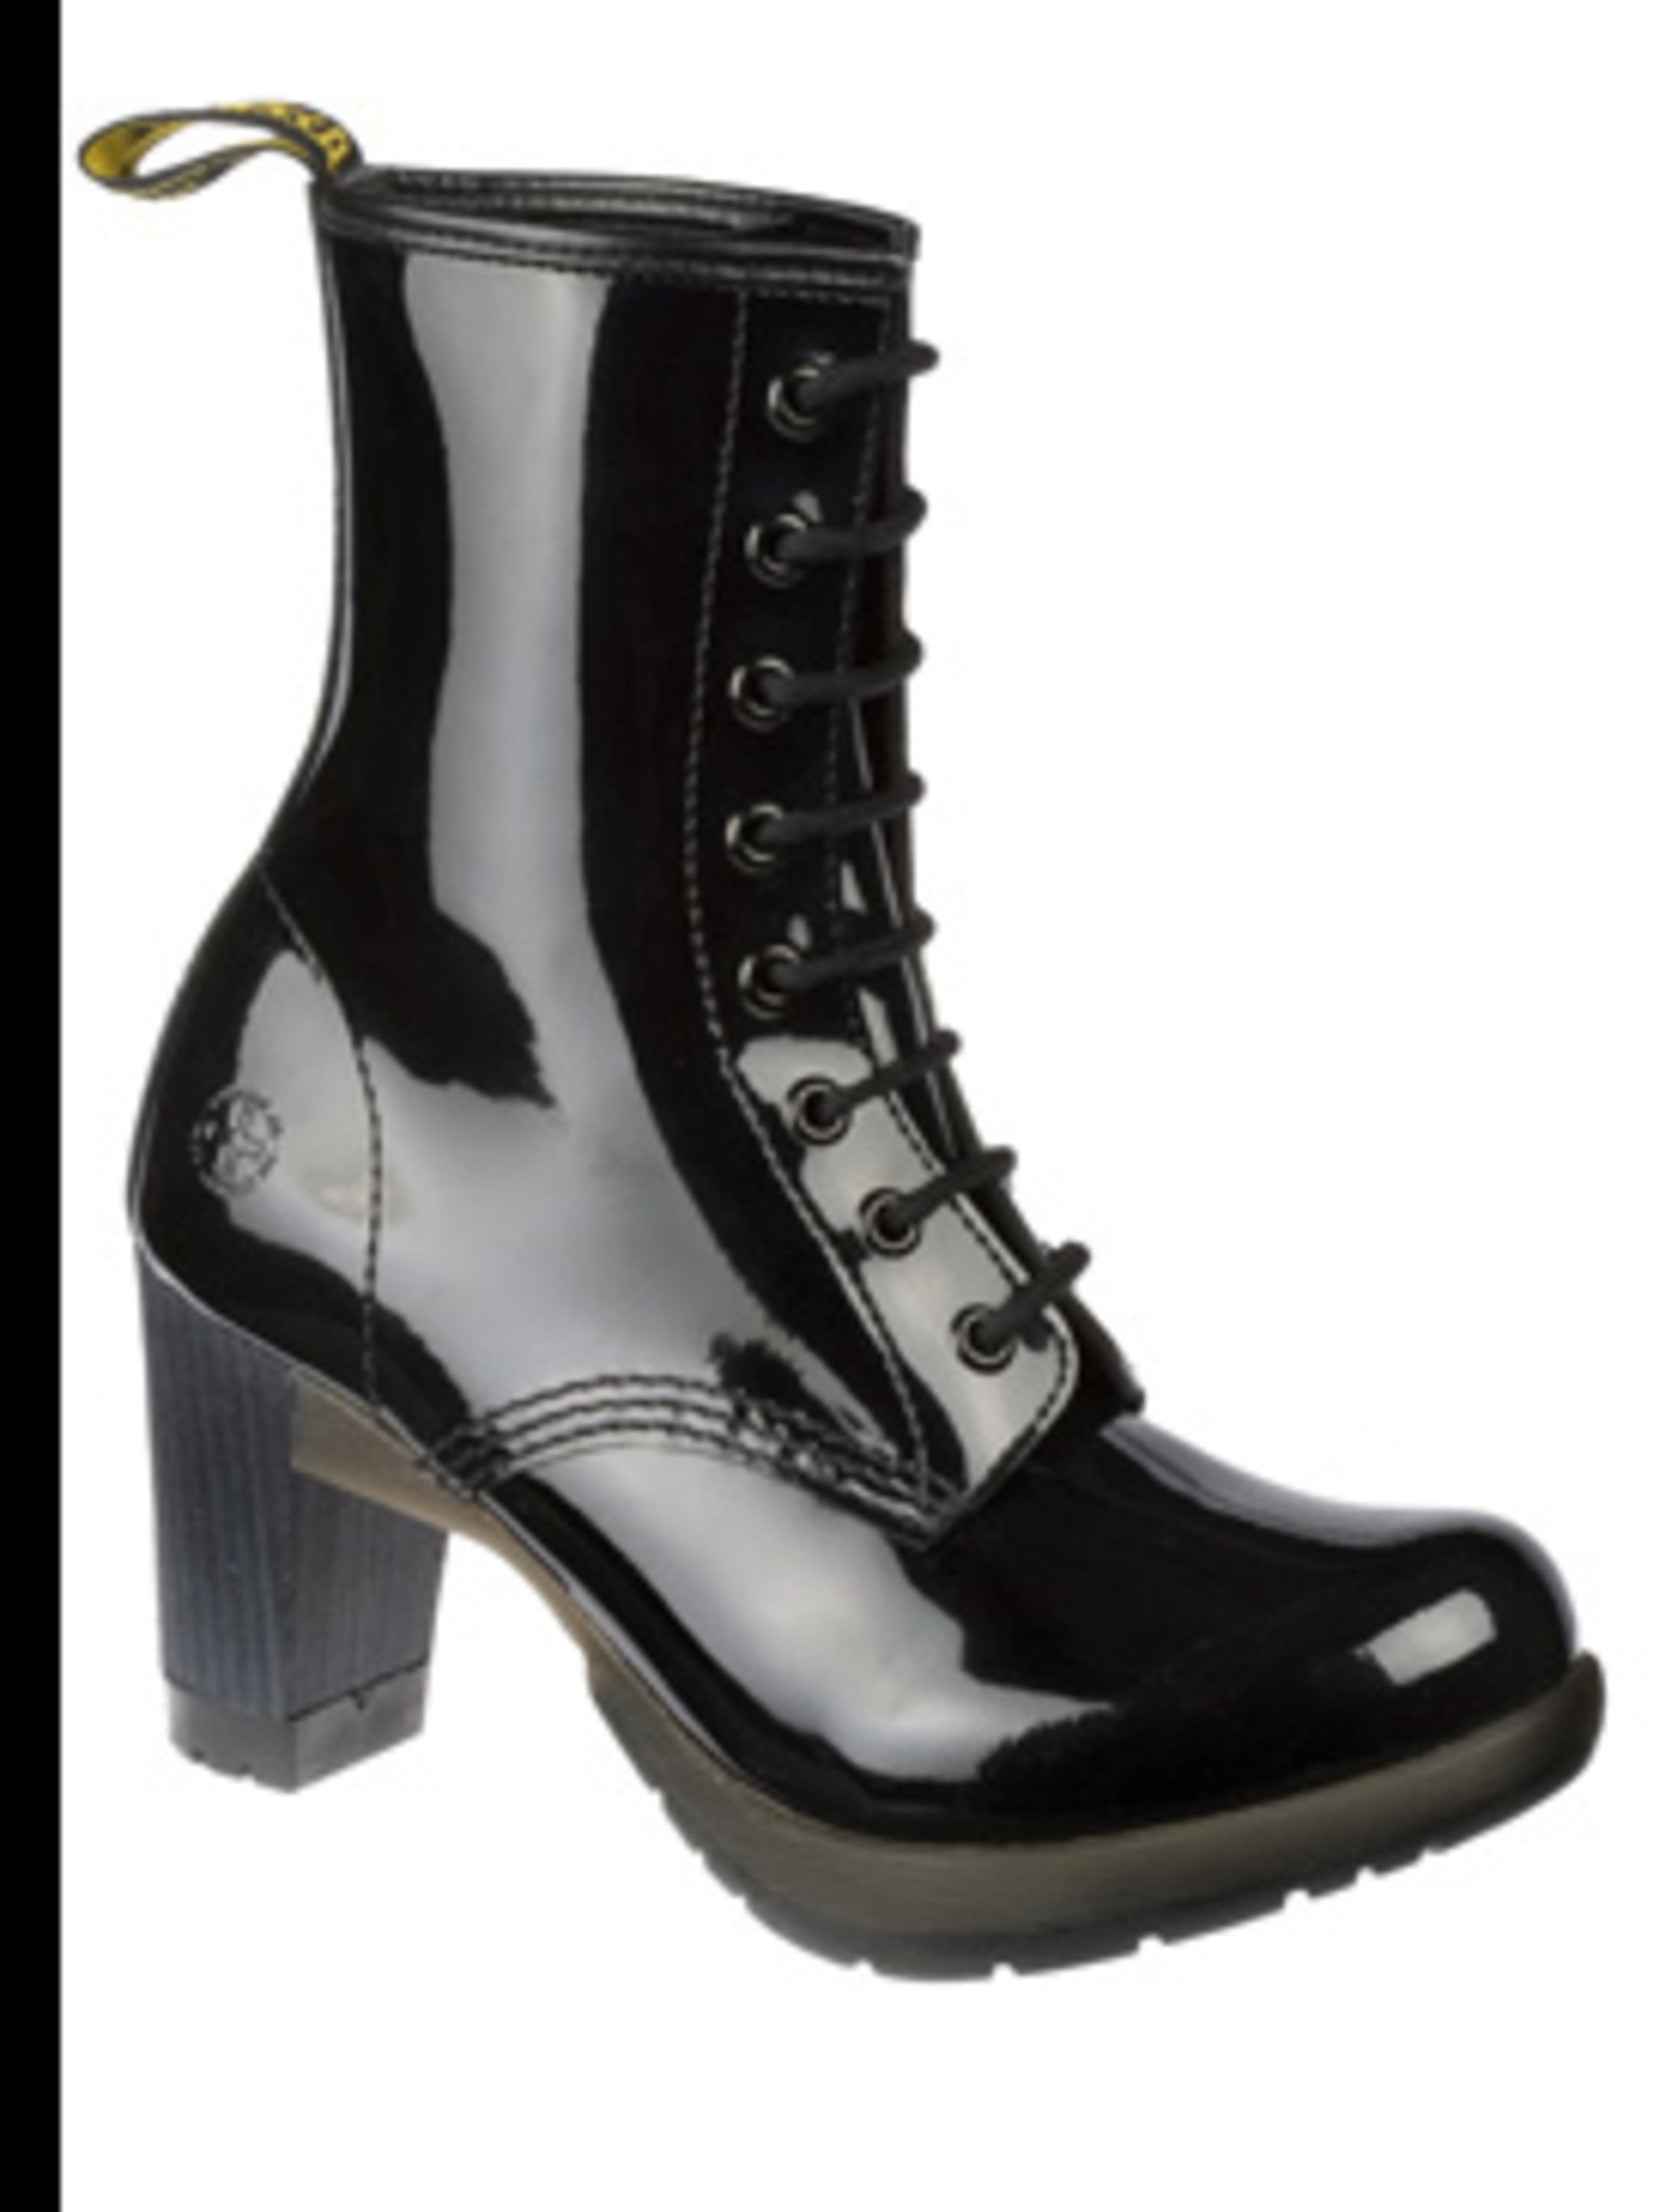 "<p>Black patent high heeled boots, £70, by <a href=""http://store.drmartens.co.uk/p-3411-darcie.aspx"">Dr Martens</a></p>"